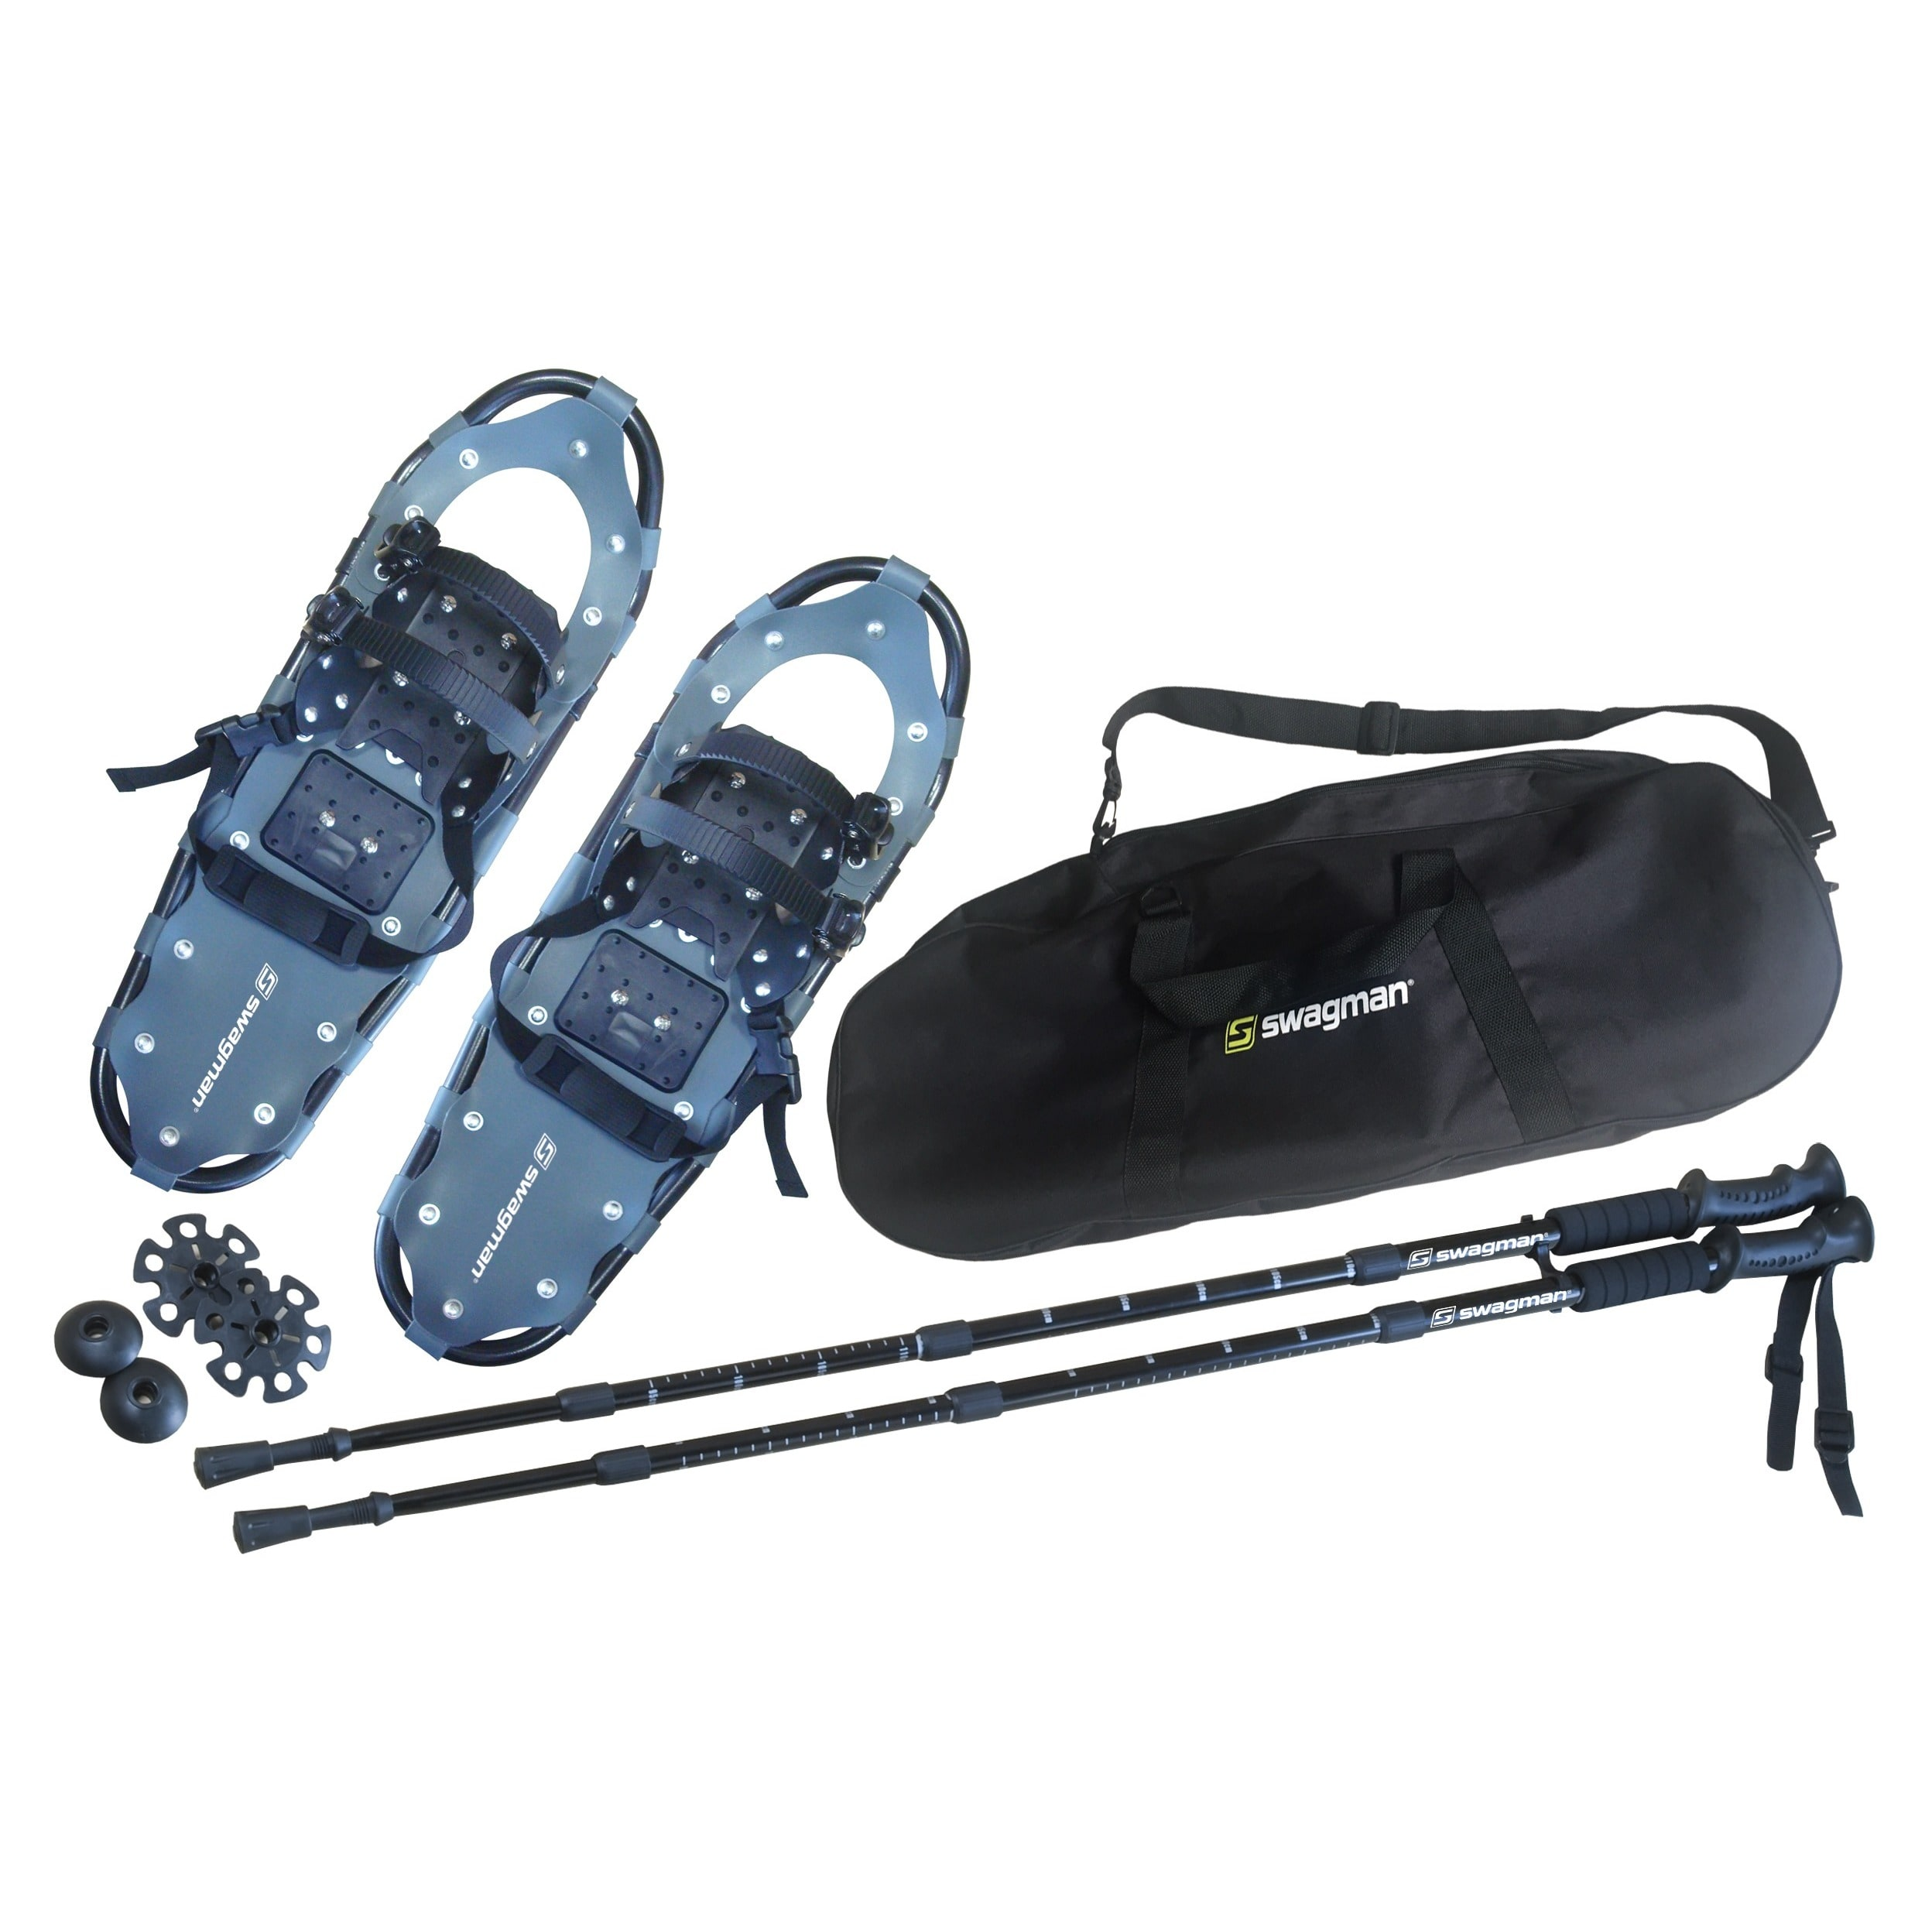 Swagman Proform Snowshoes Med. w Trekking Poles by Overstock